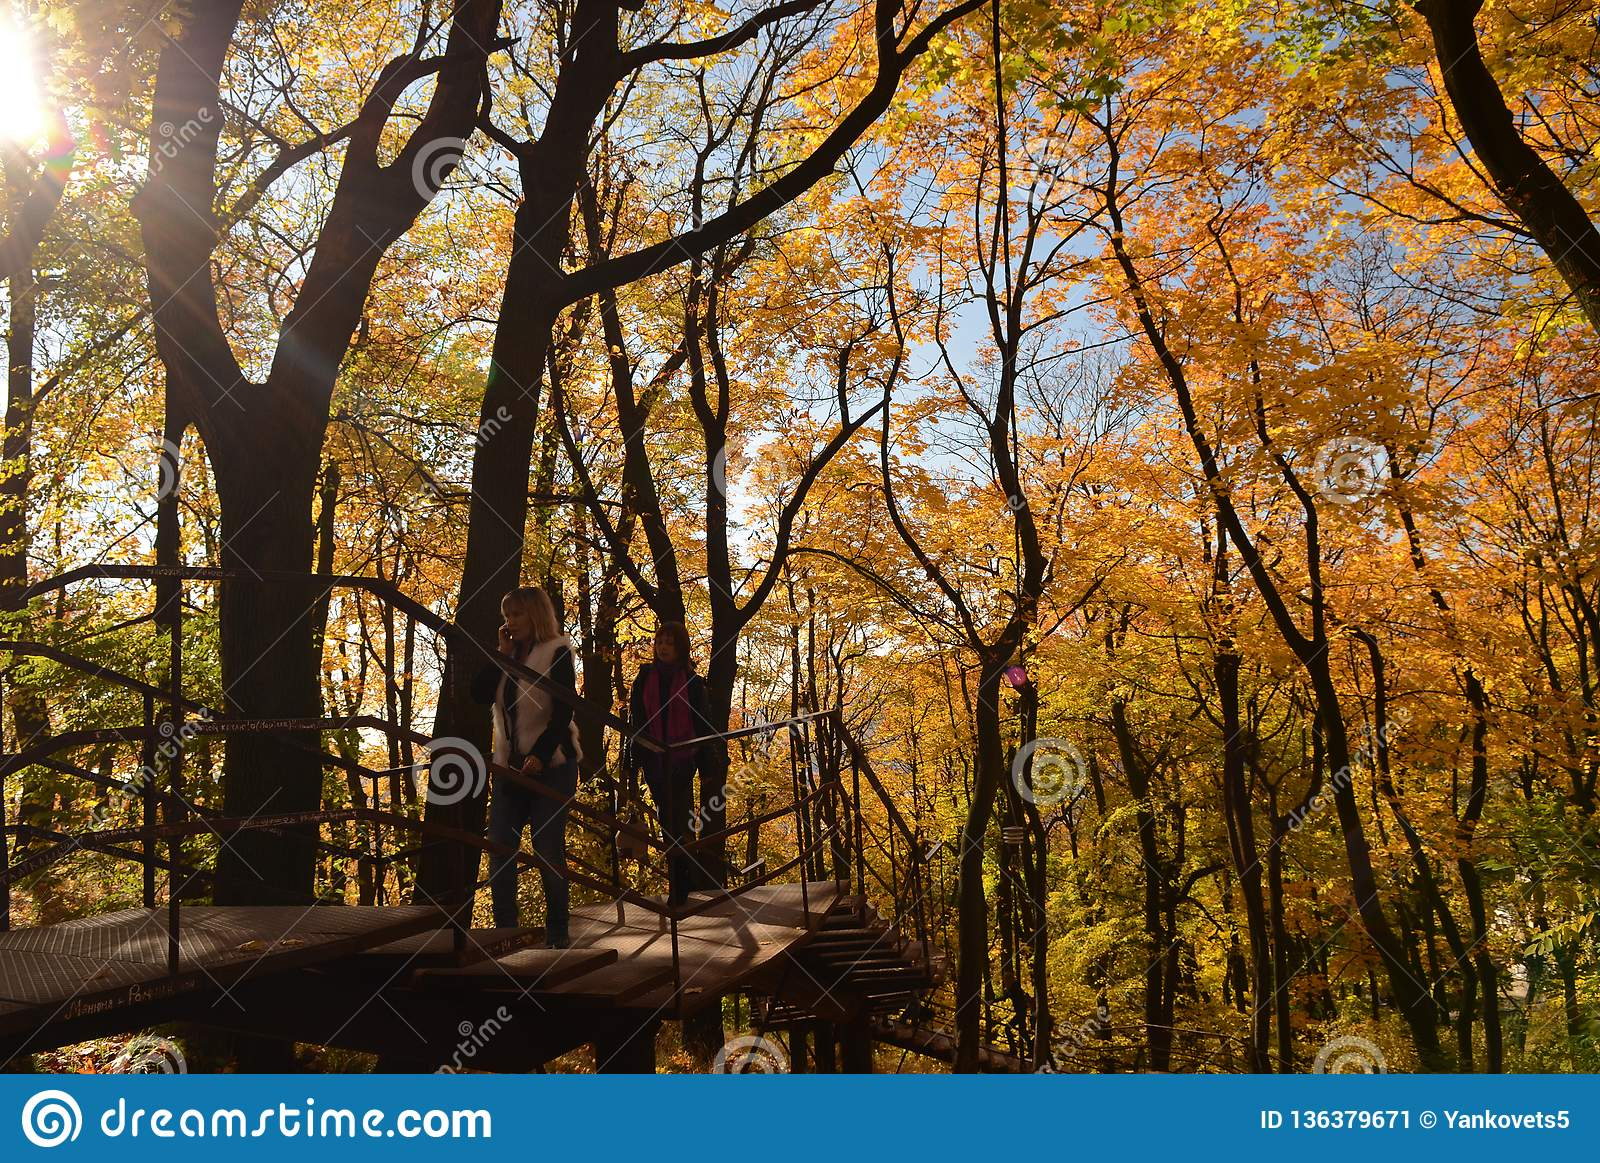 Two girls walk on a wooden staircase in the park under yellow trees